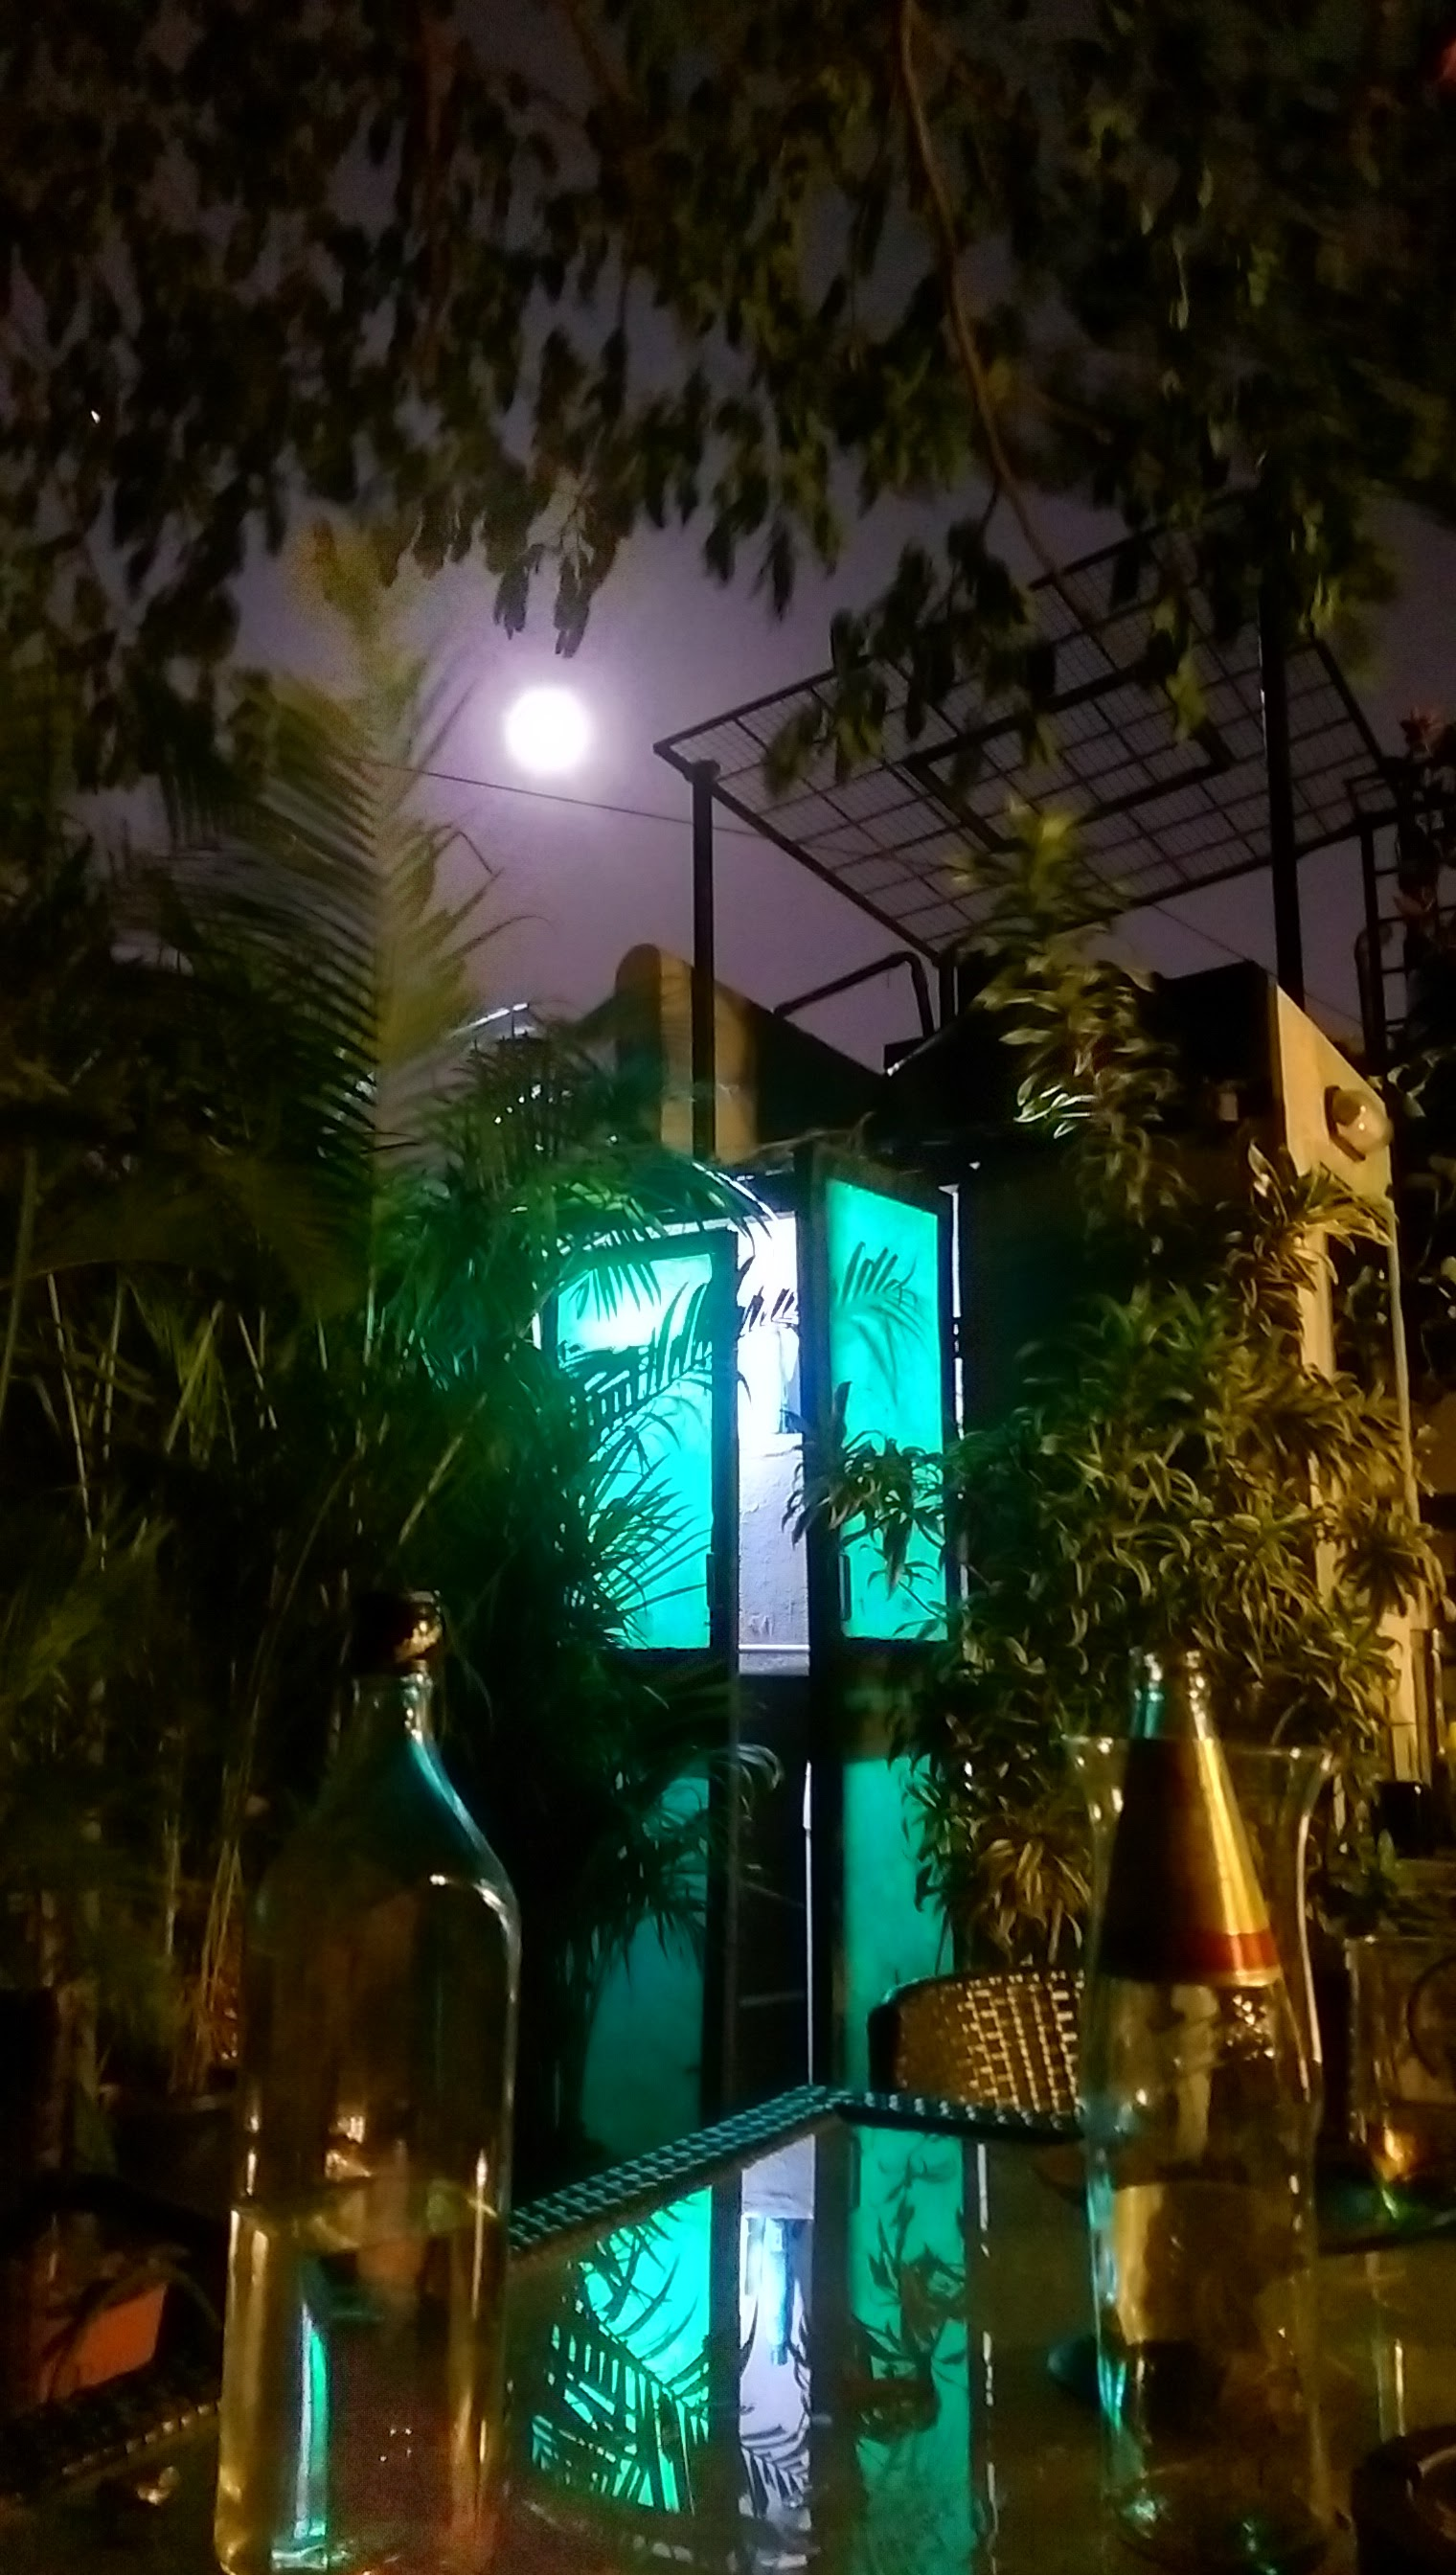 Moonlit Night on the terrace